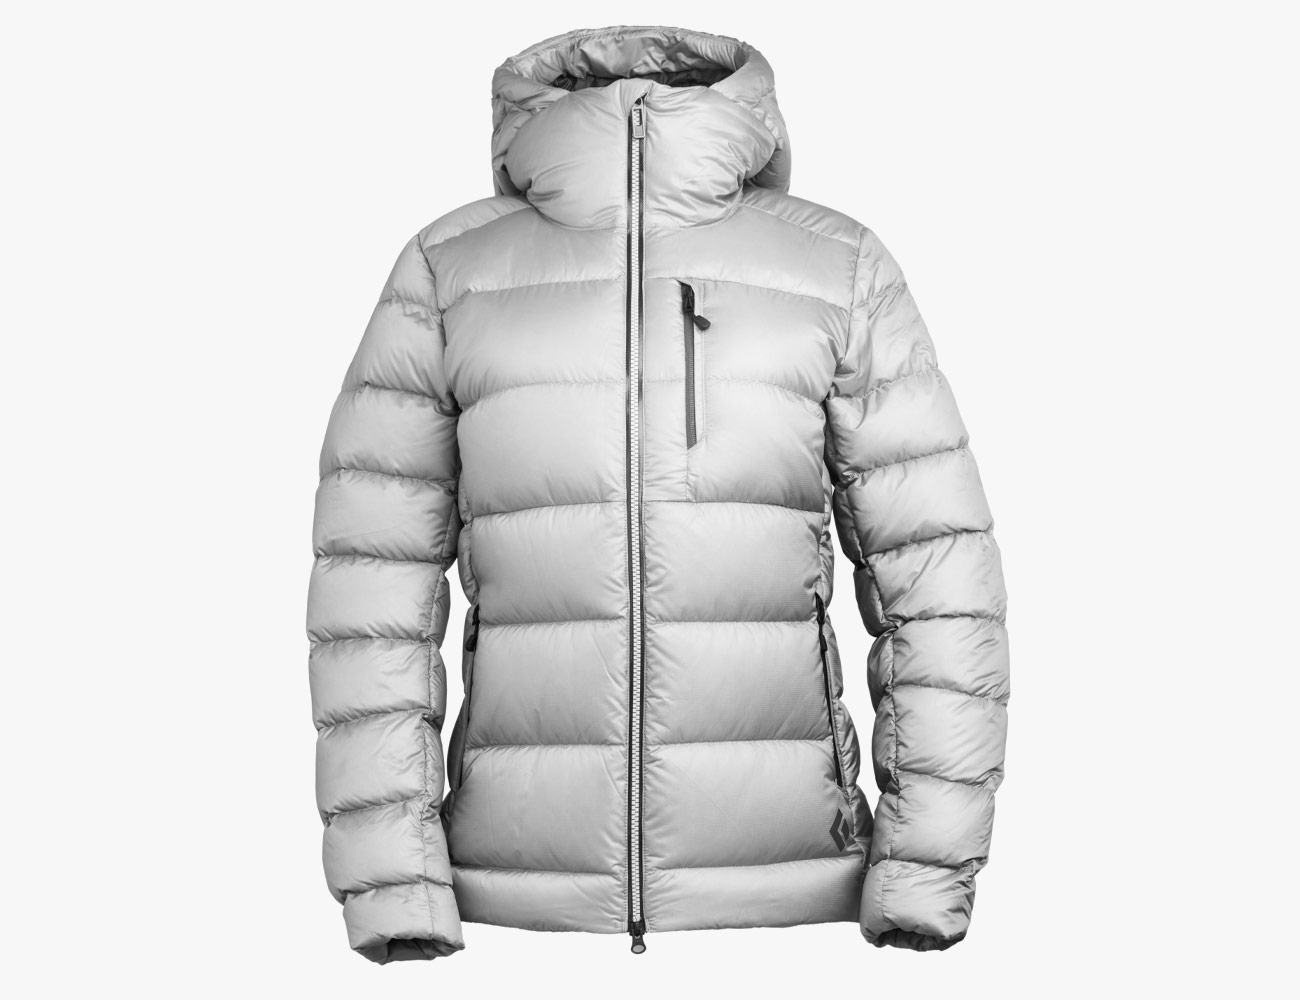 outlet store ec3e3 40273 A Preview of the Best New Outdoor Gear Launching in 2019